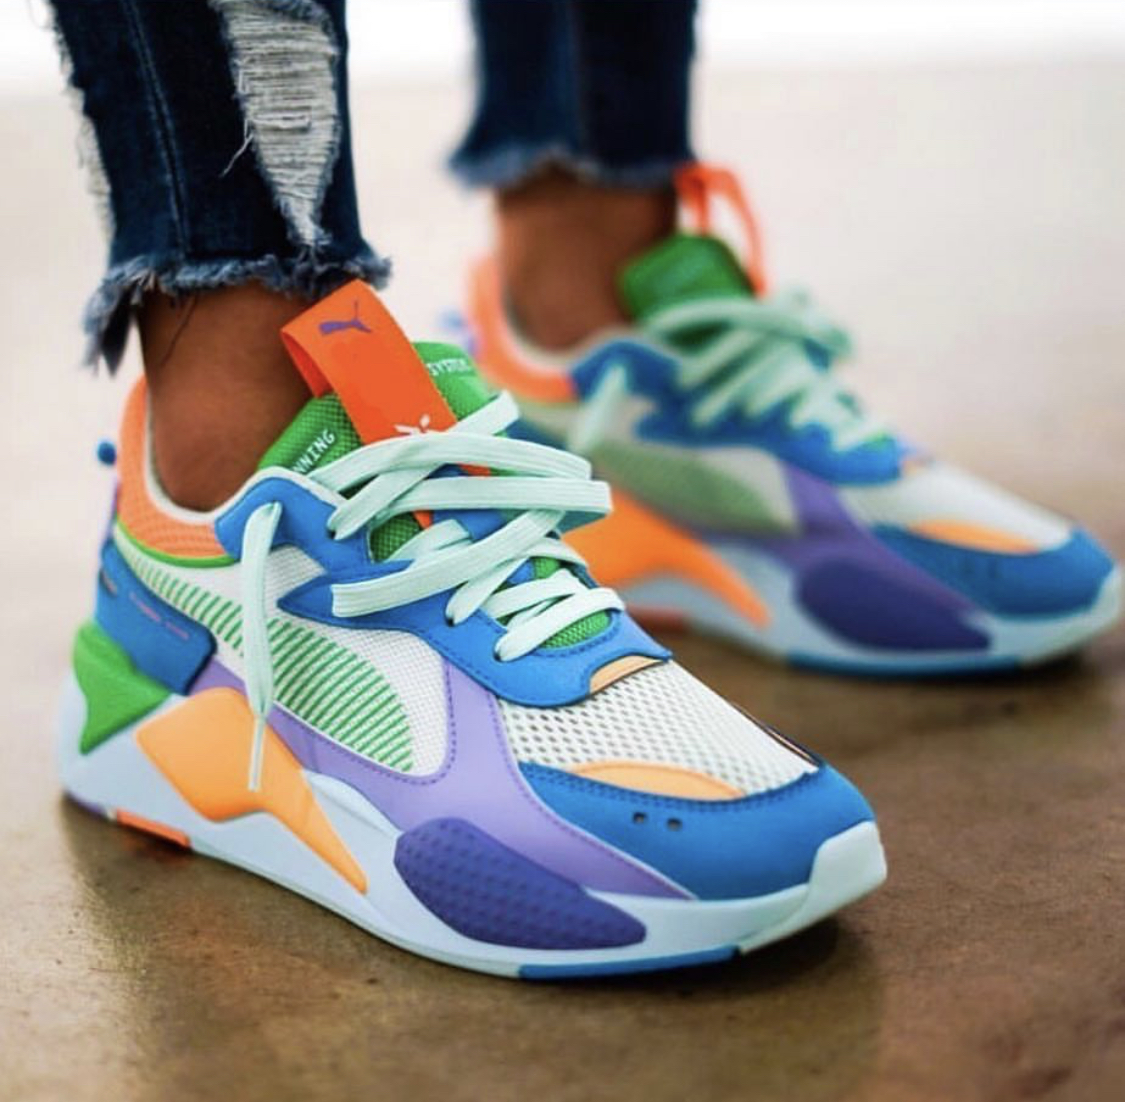 Now Available: Women's Puma RS-X Toys